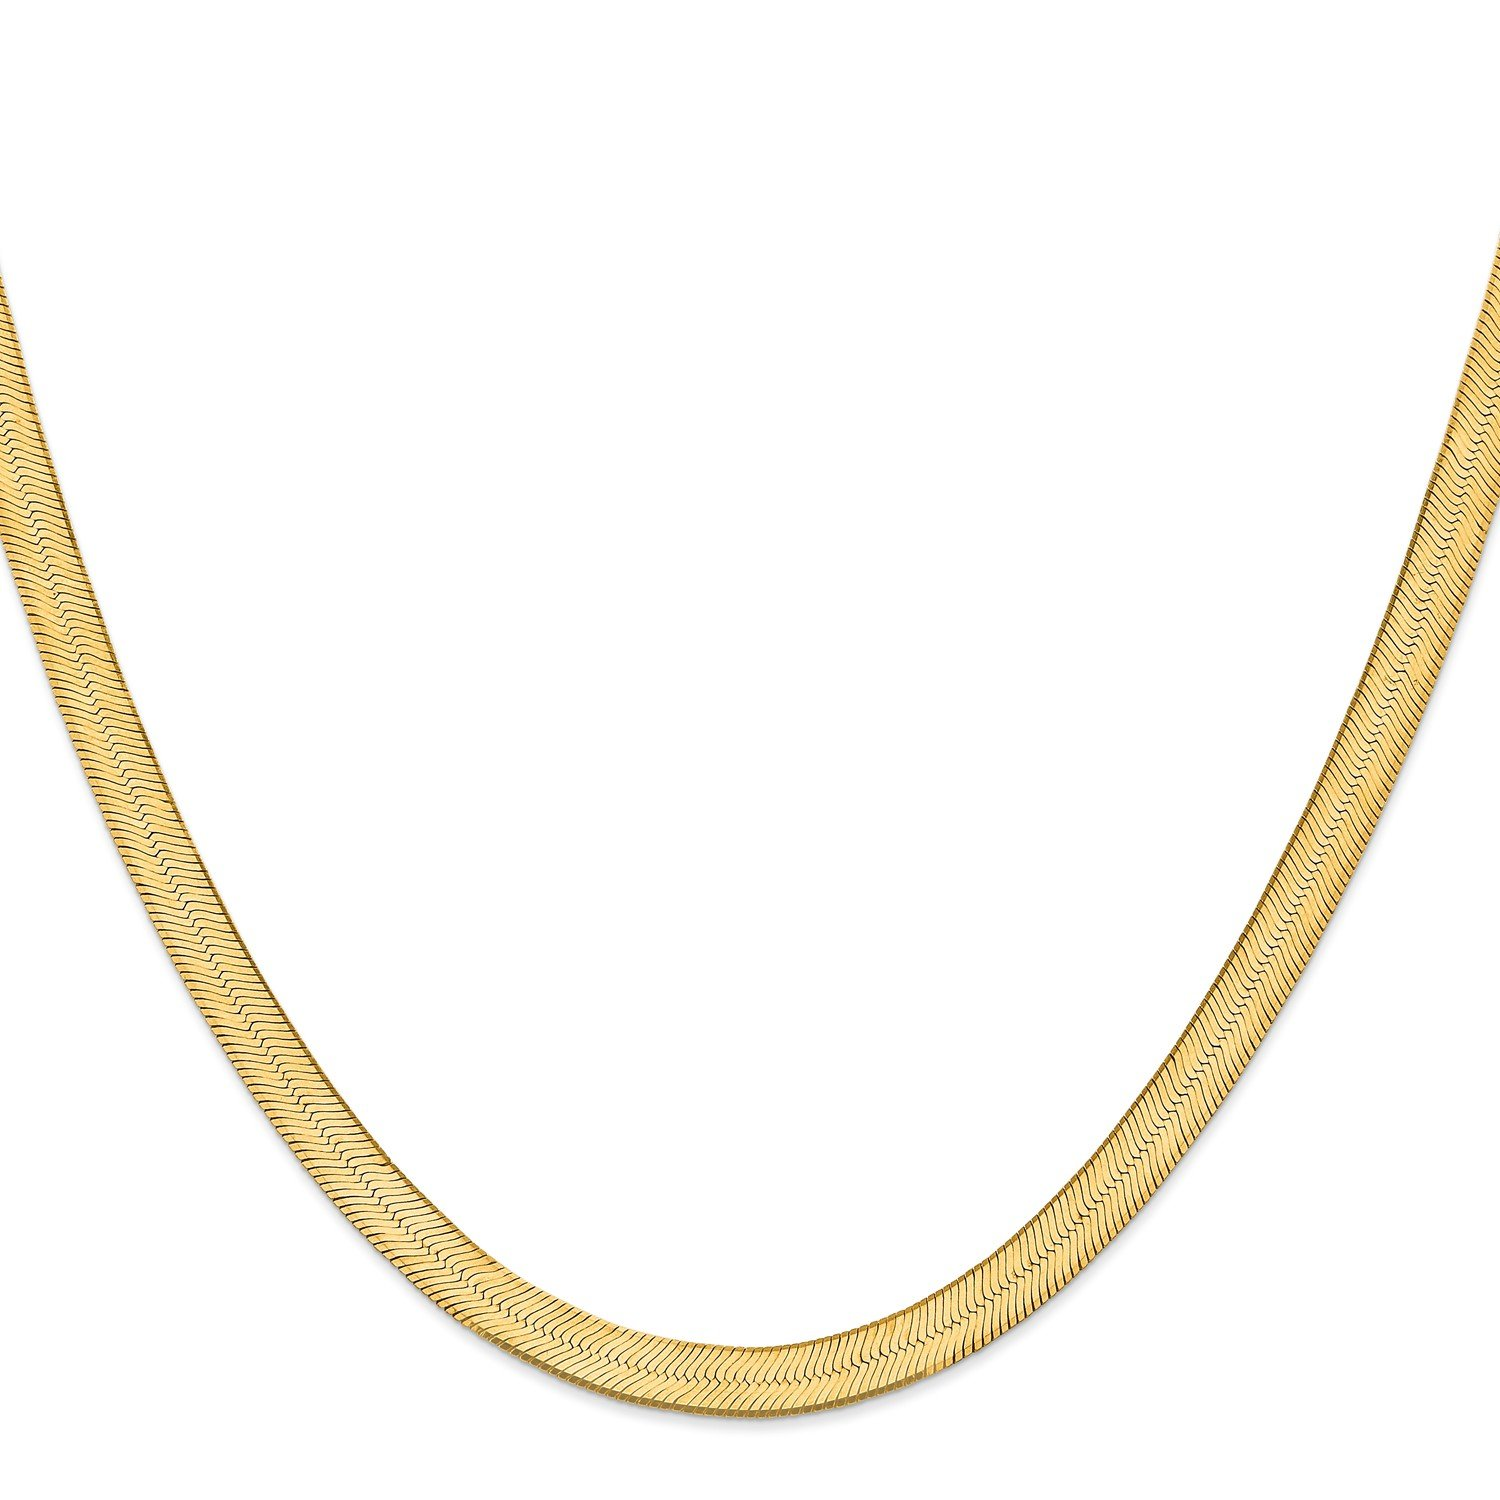 Roy Rose Jewelry 14K Yellow Gold 6.5mm Silky Herringbone Chain Necklace ~ Length 18'' inches